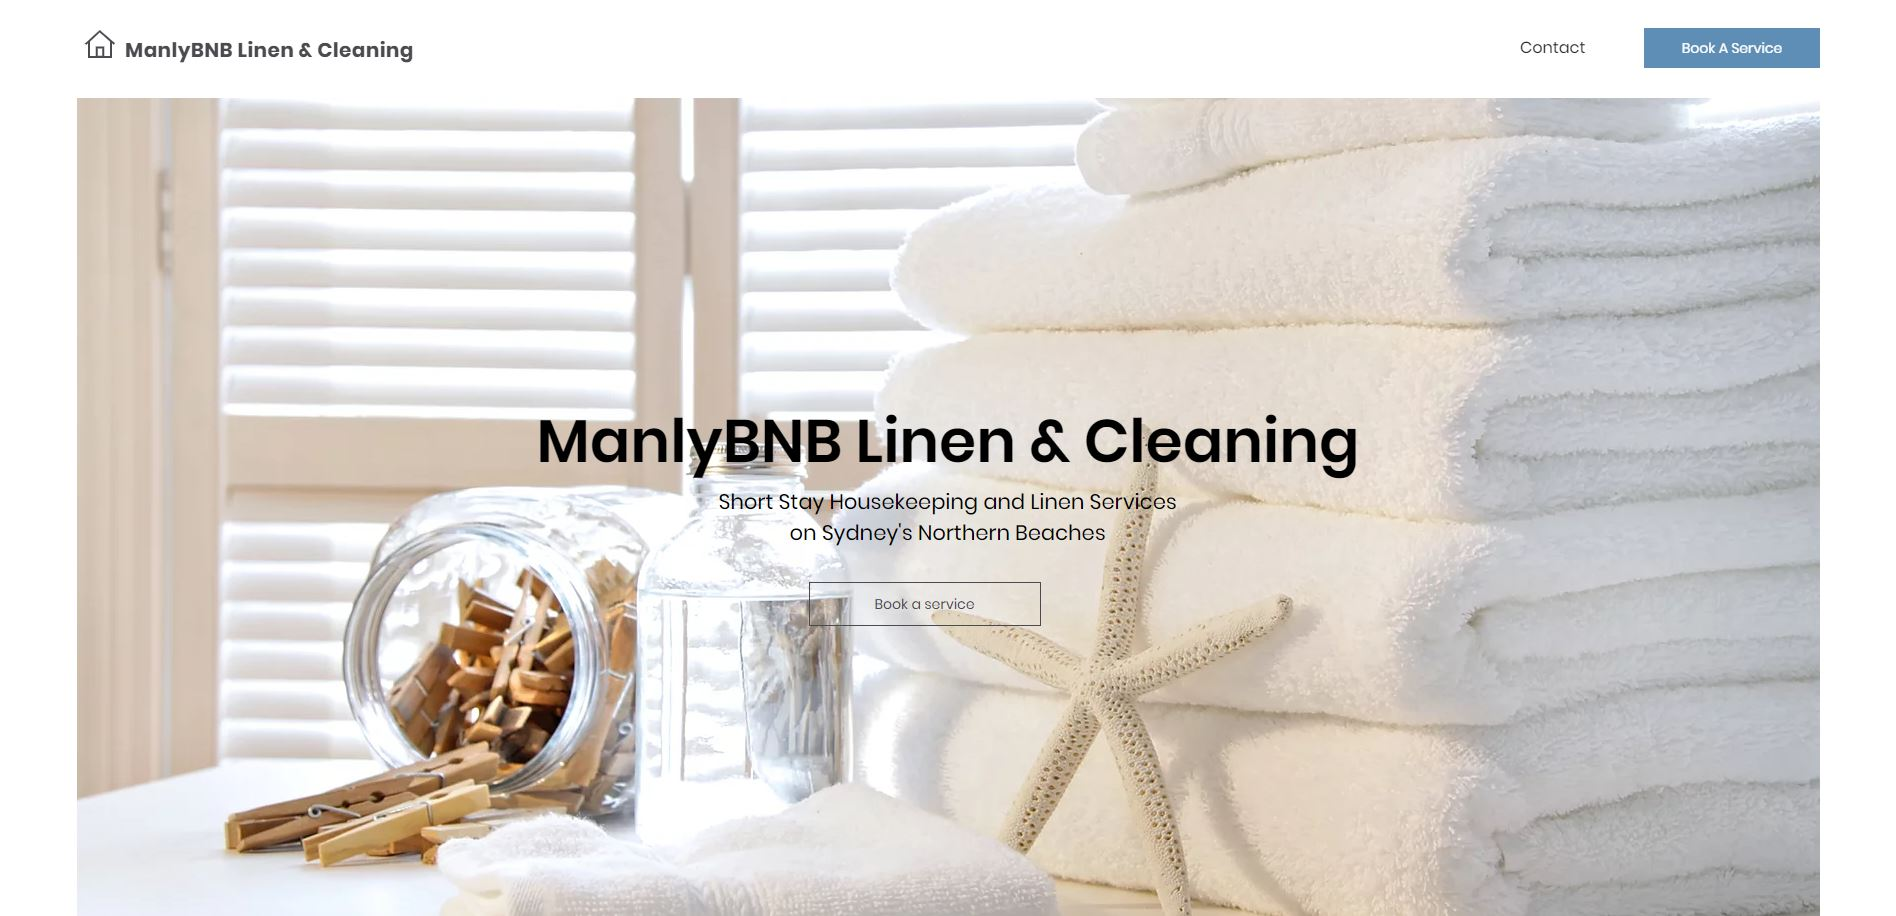 Housekeeping and Linen Services